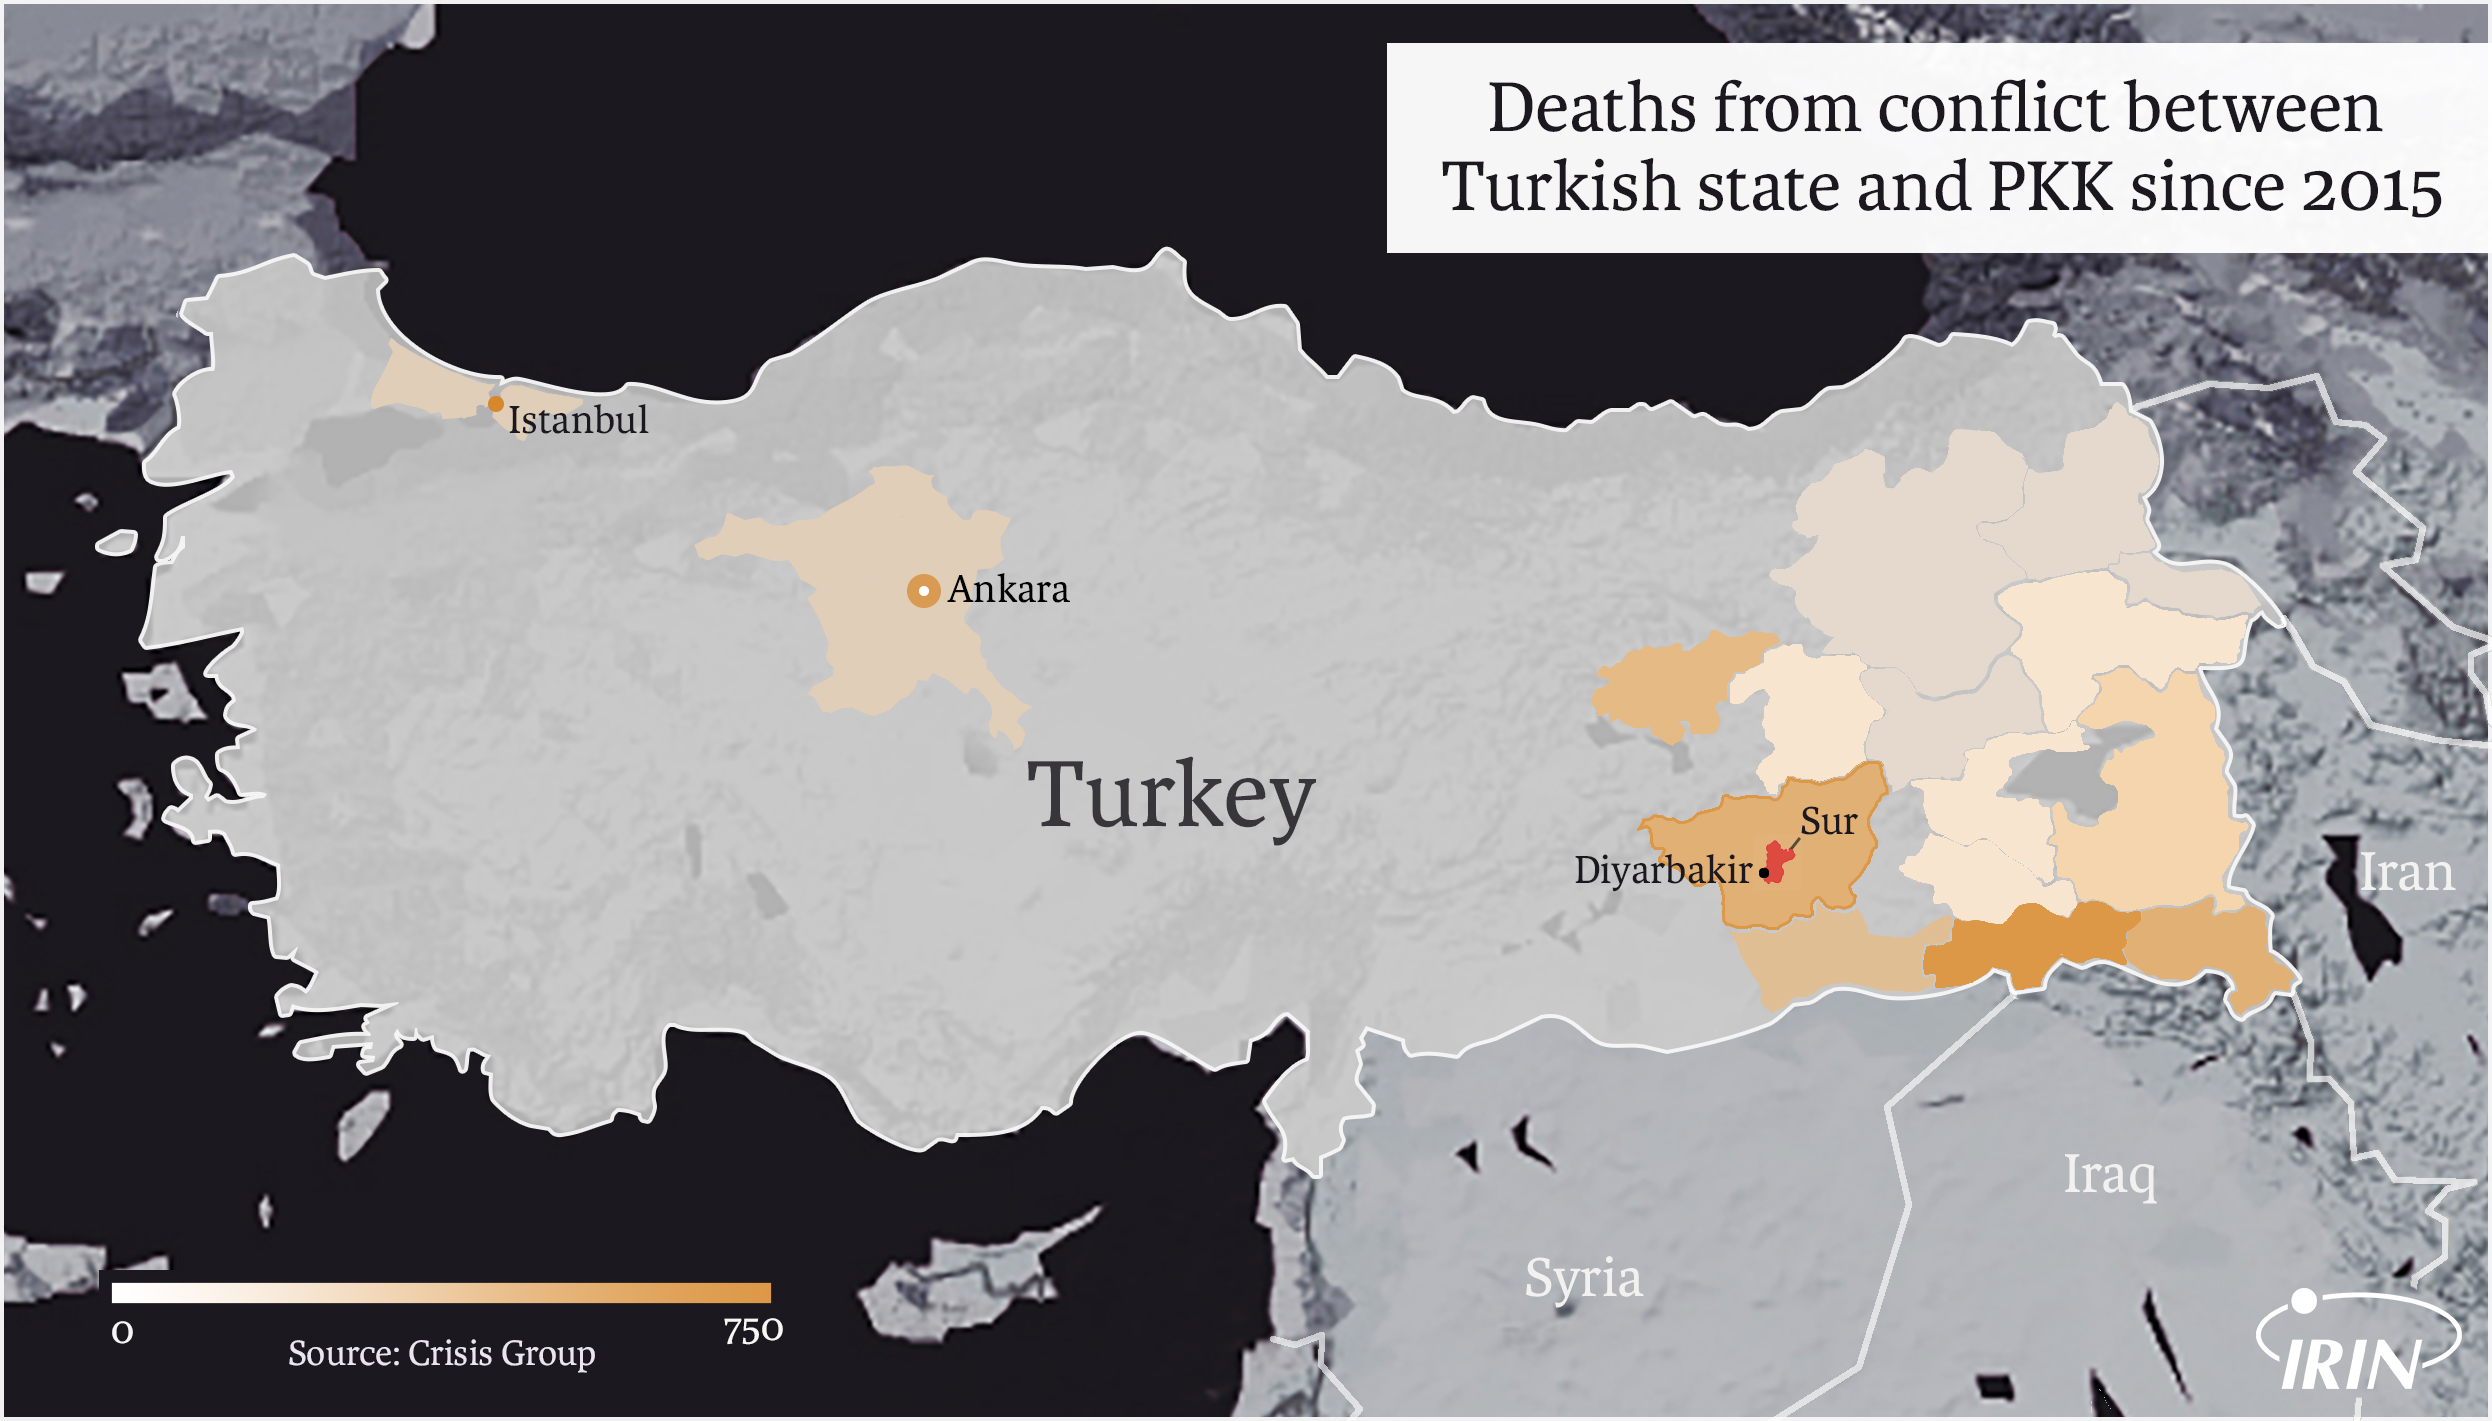 Map of Turkey showing Diyarbakir and casualties between PKK and Turkish state.